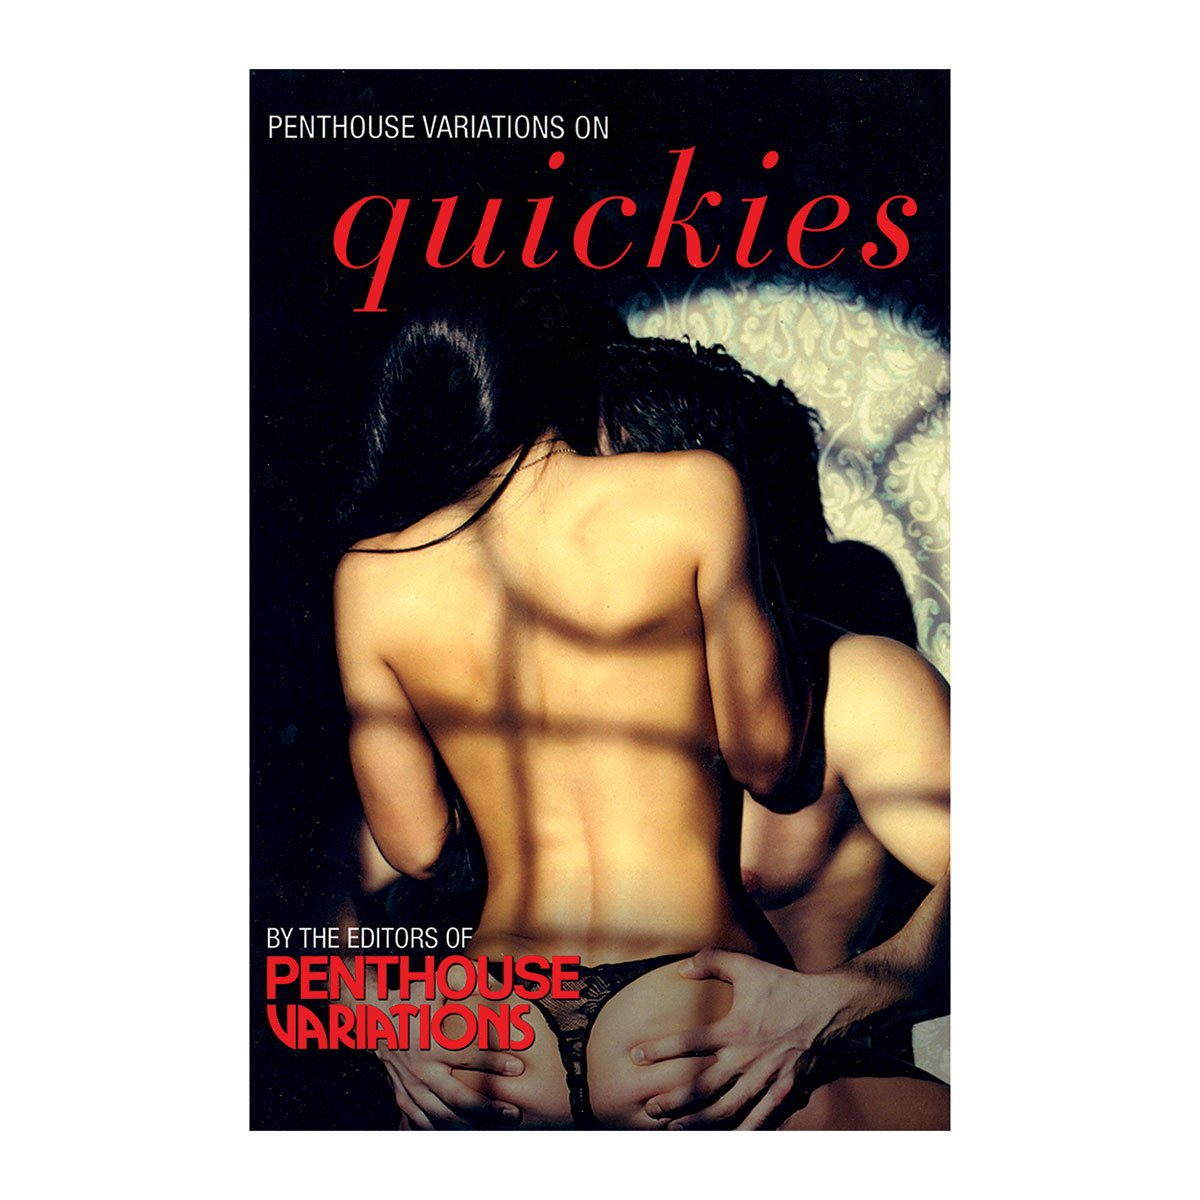 Penthouse Variations on Quickies - Cleis Press